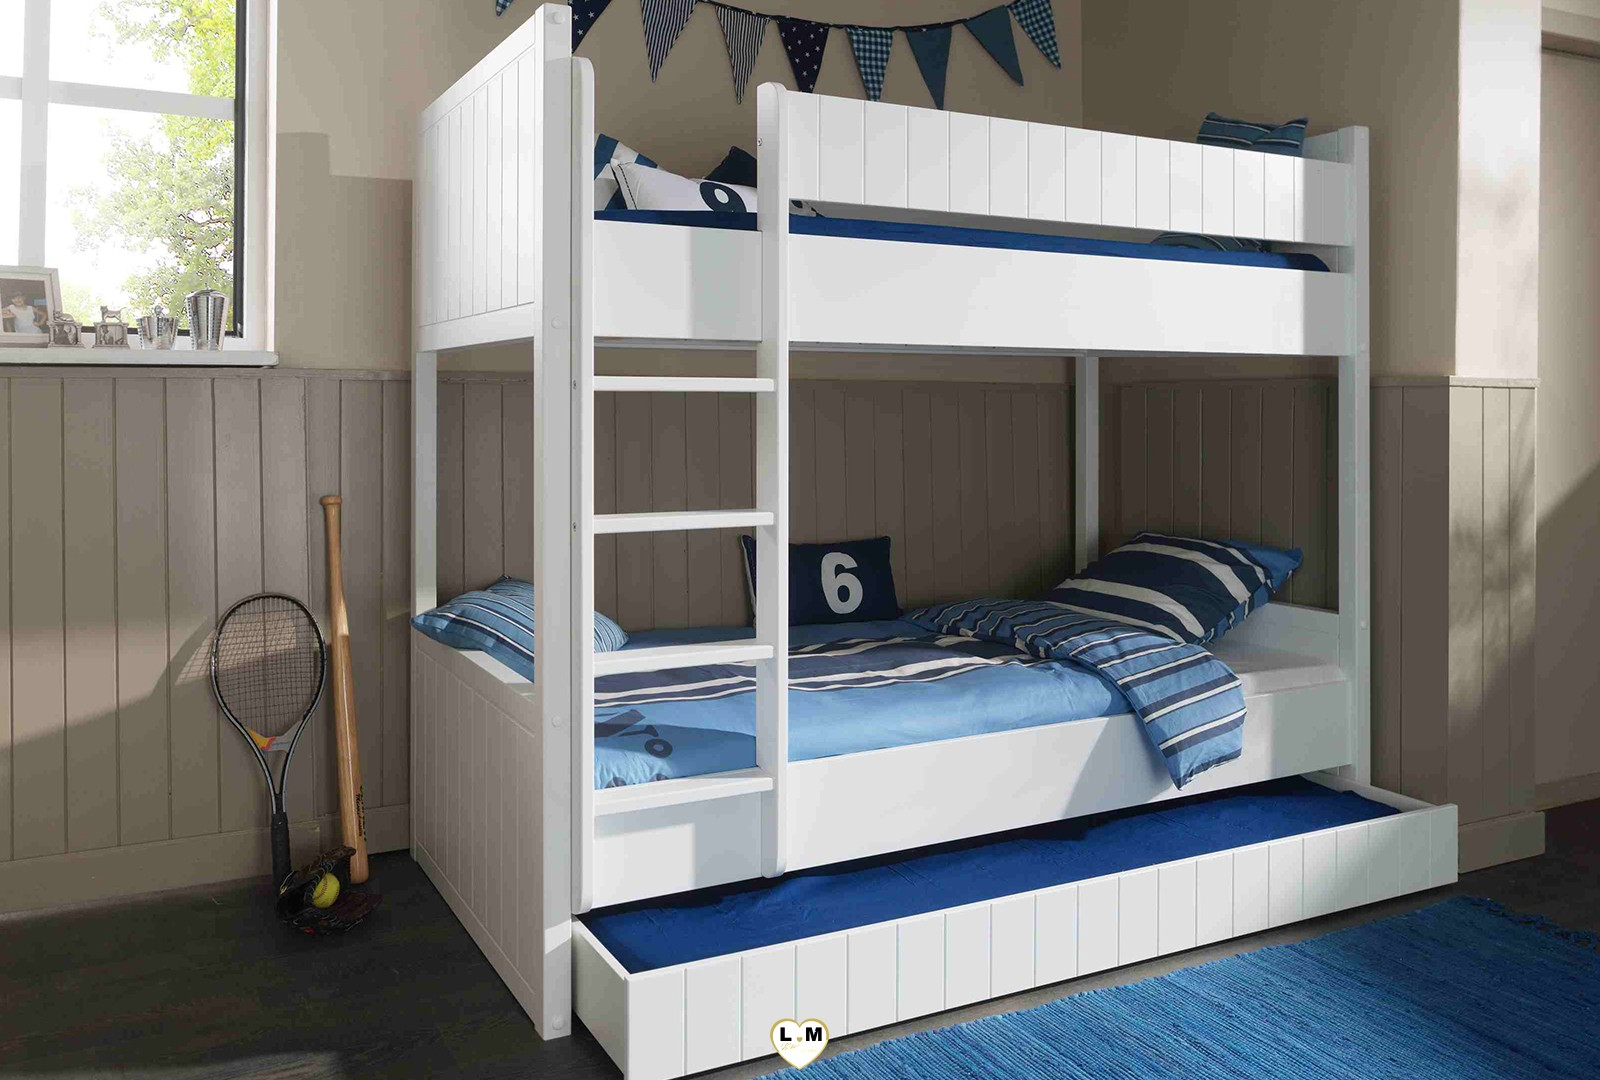 robinson chambre enfant le lit superpose lignemeuble com. Black Bedroom Furniture Sets. Home Design Ideas